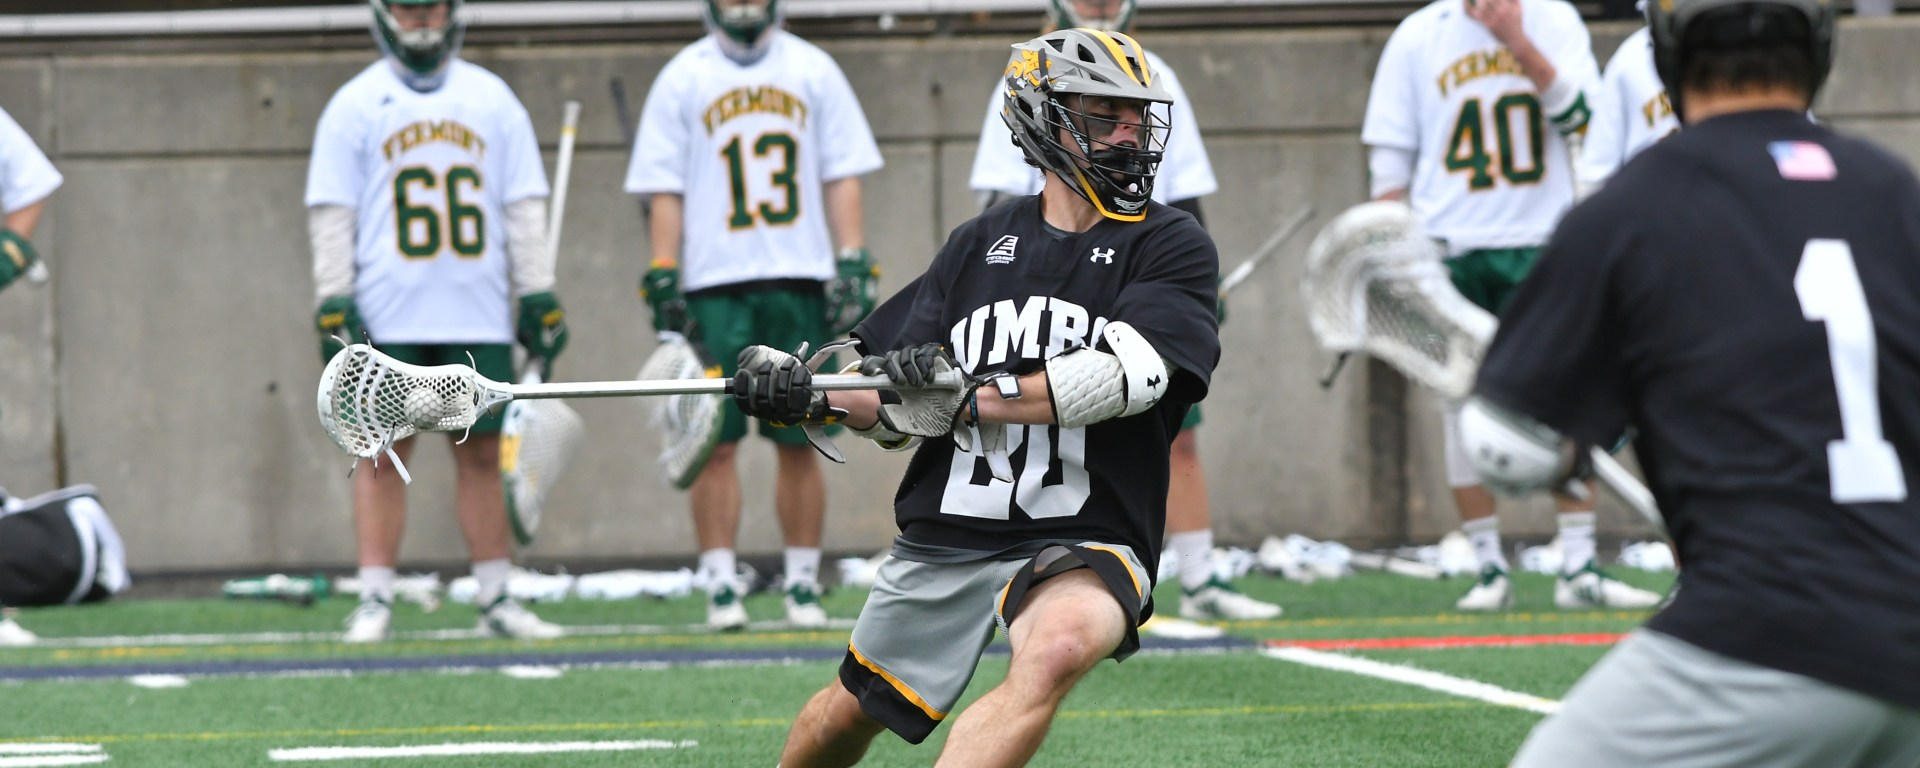 Men's lacrosse player in action on the field, as players from the opposing team stand in the background.